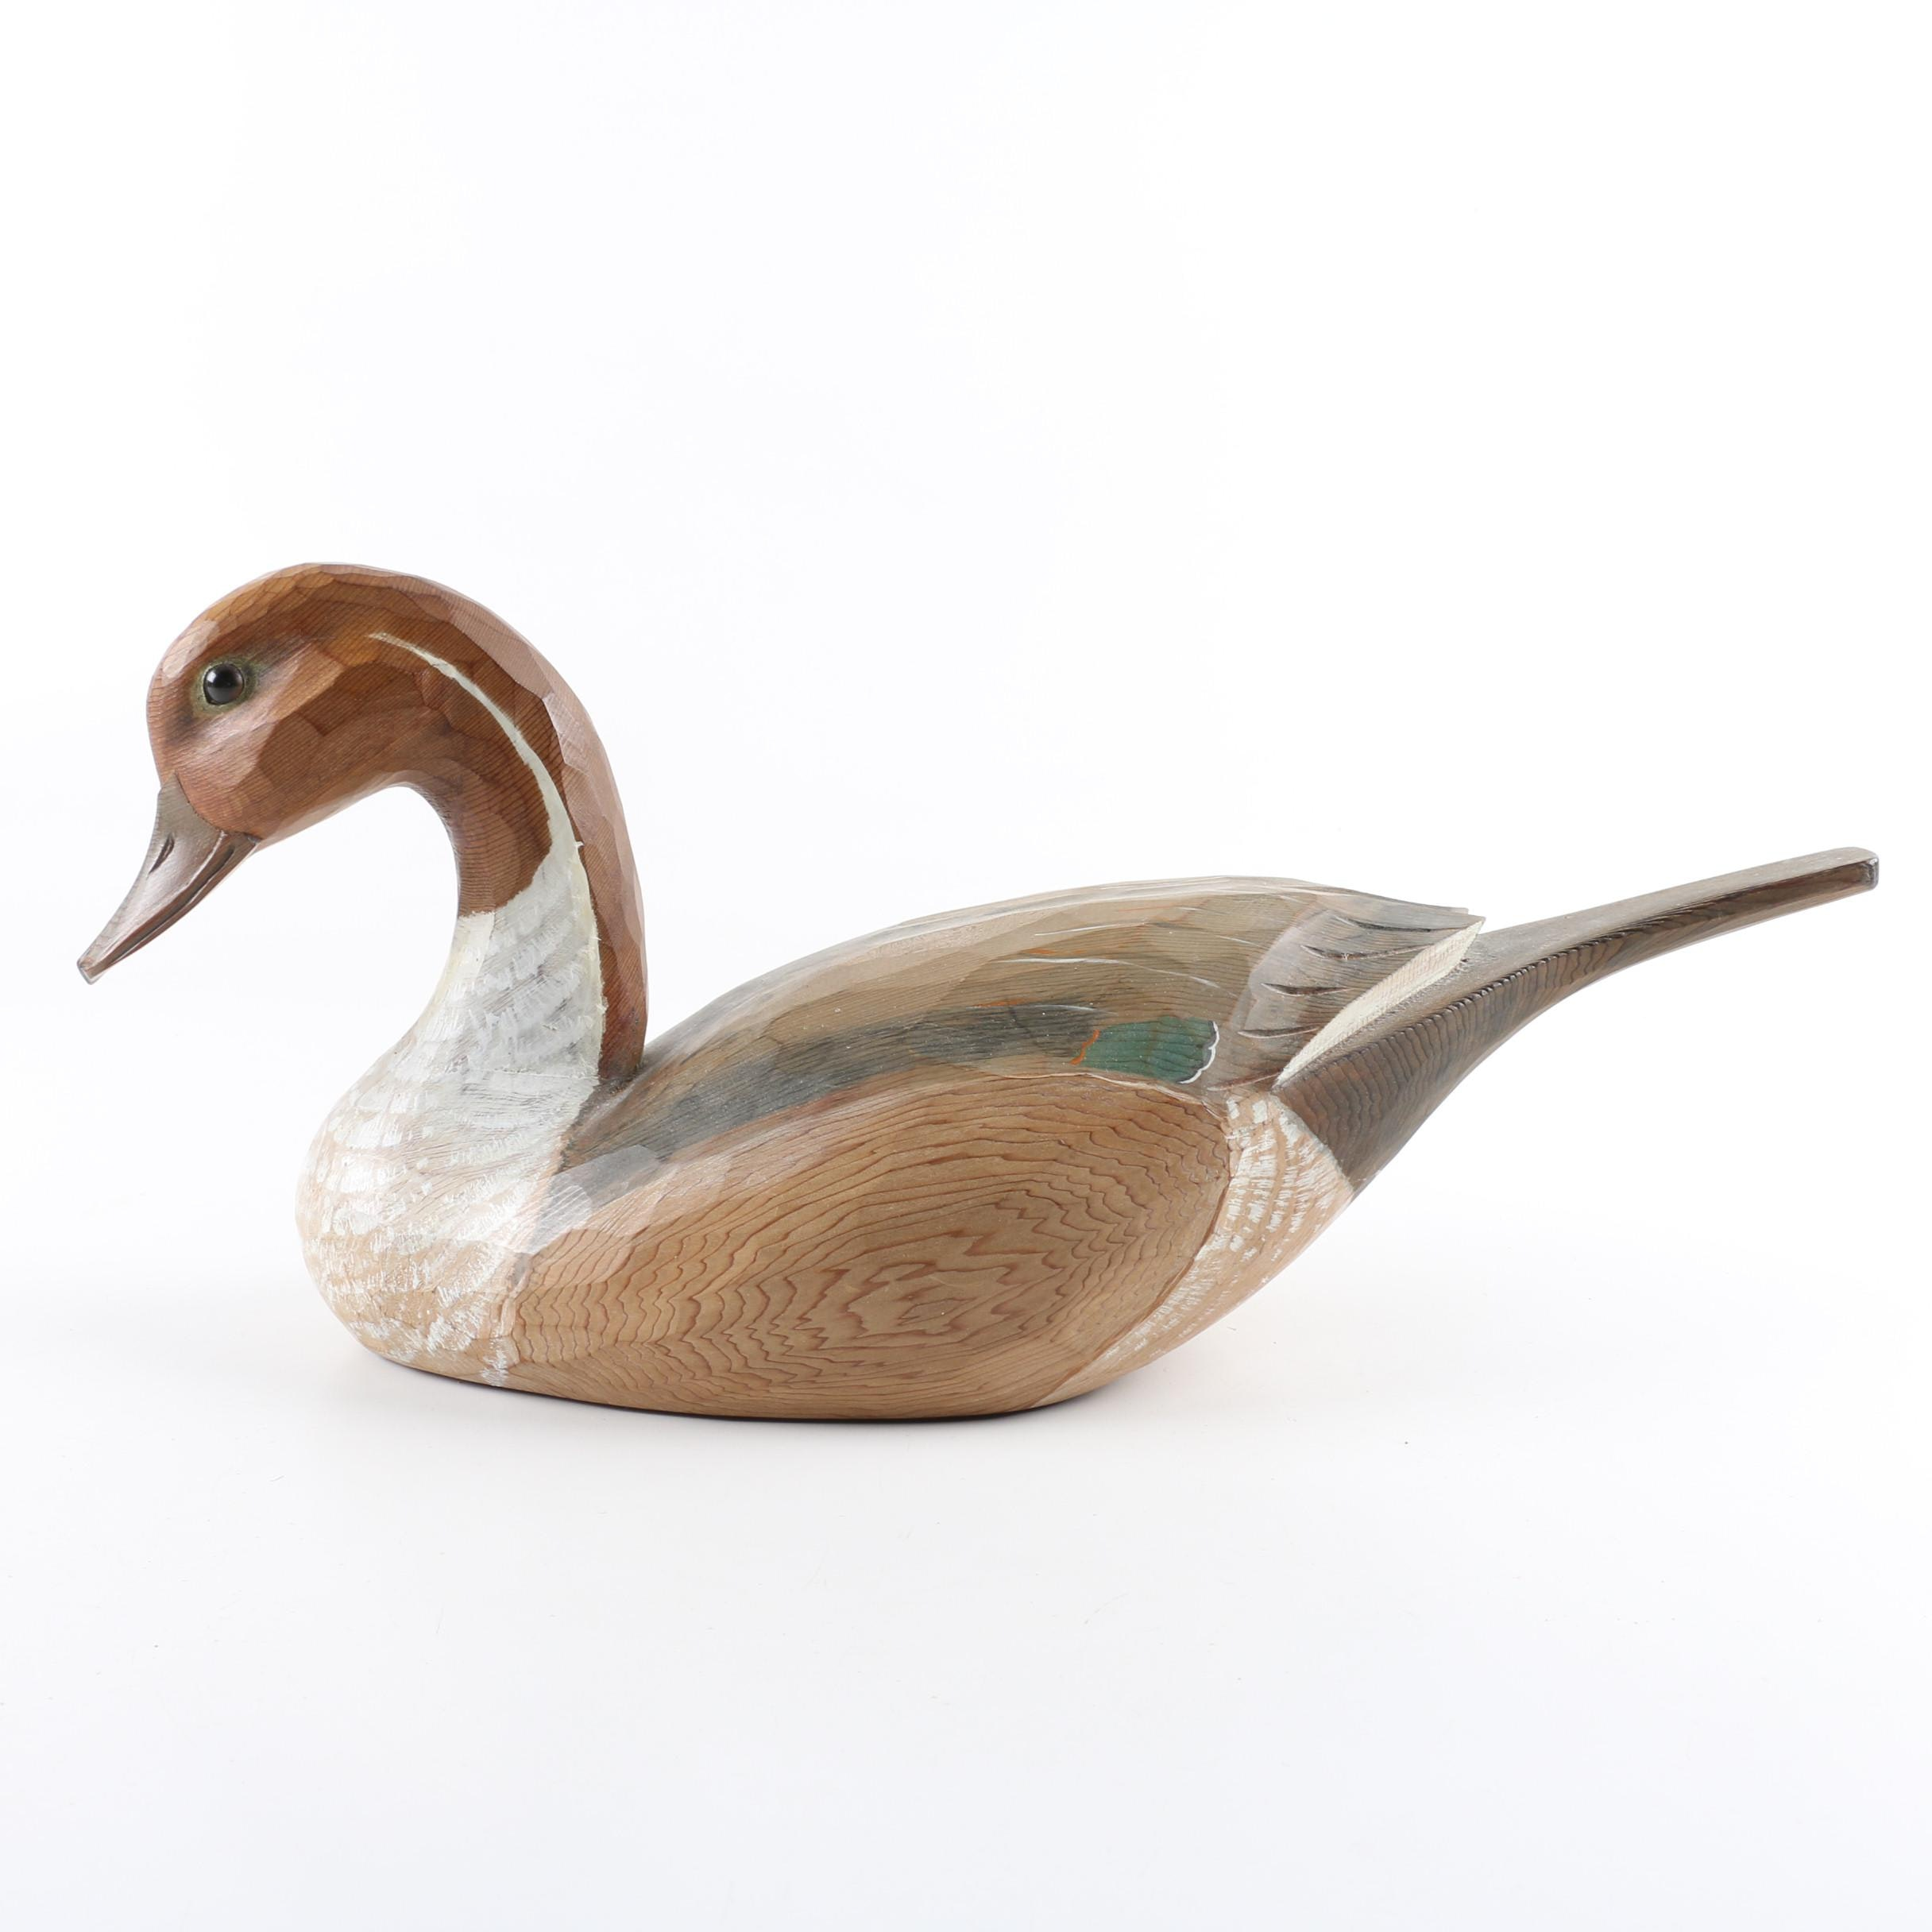 P.G. Bicknell Vintage Pintail Duck Decoy